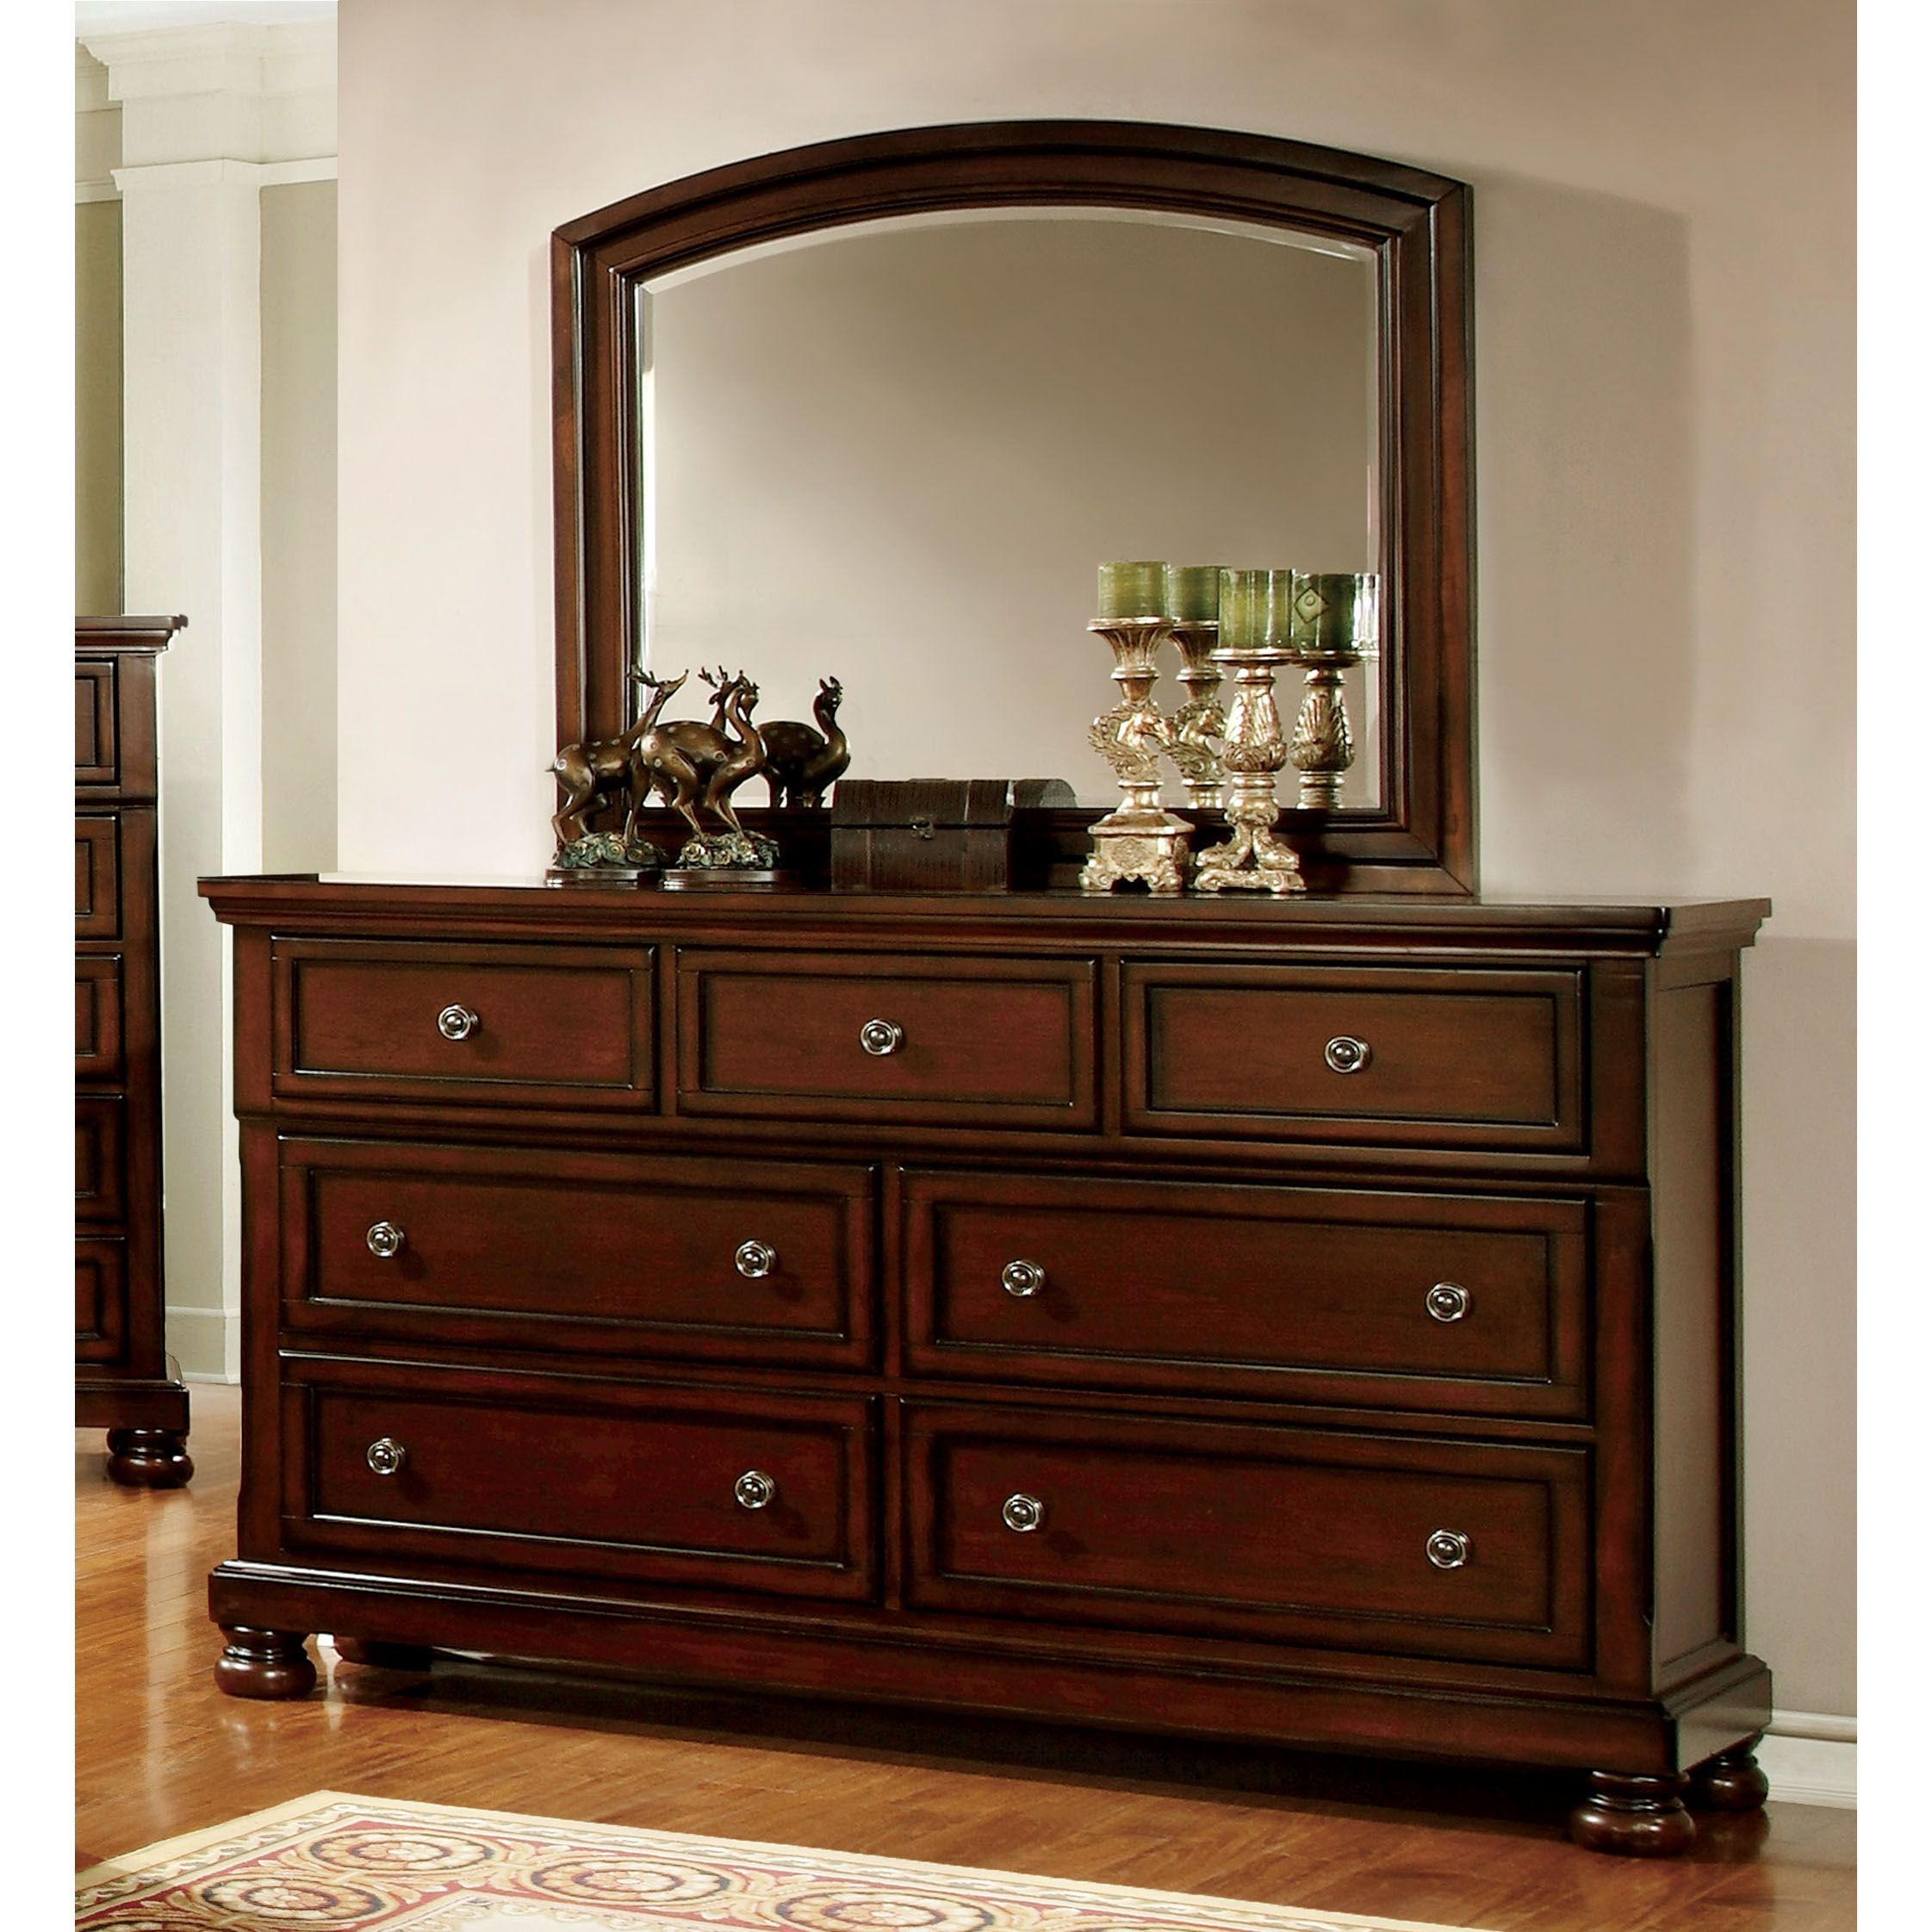 Metal Bedroom Furniture Home Goods Free Shipping On